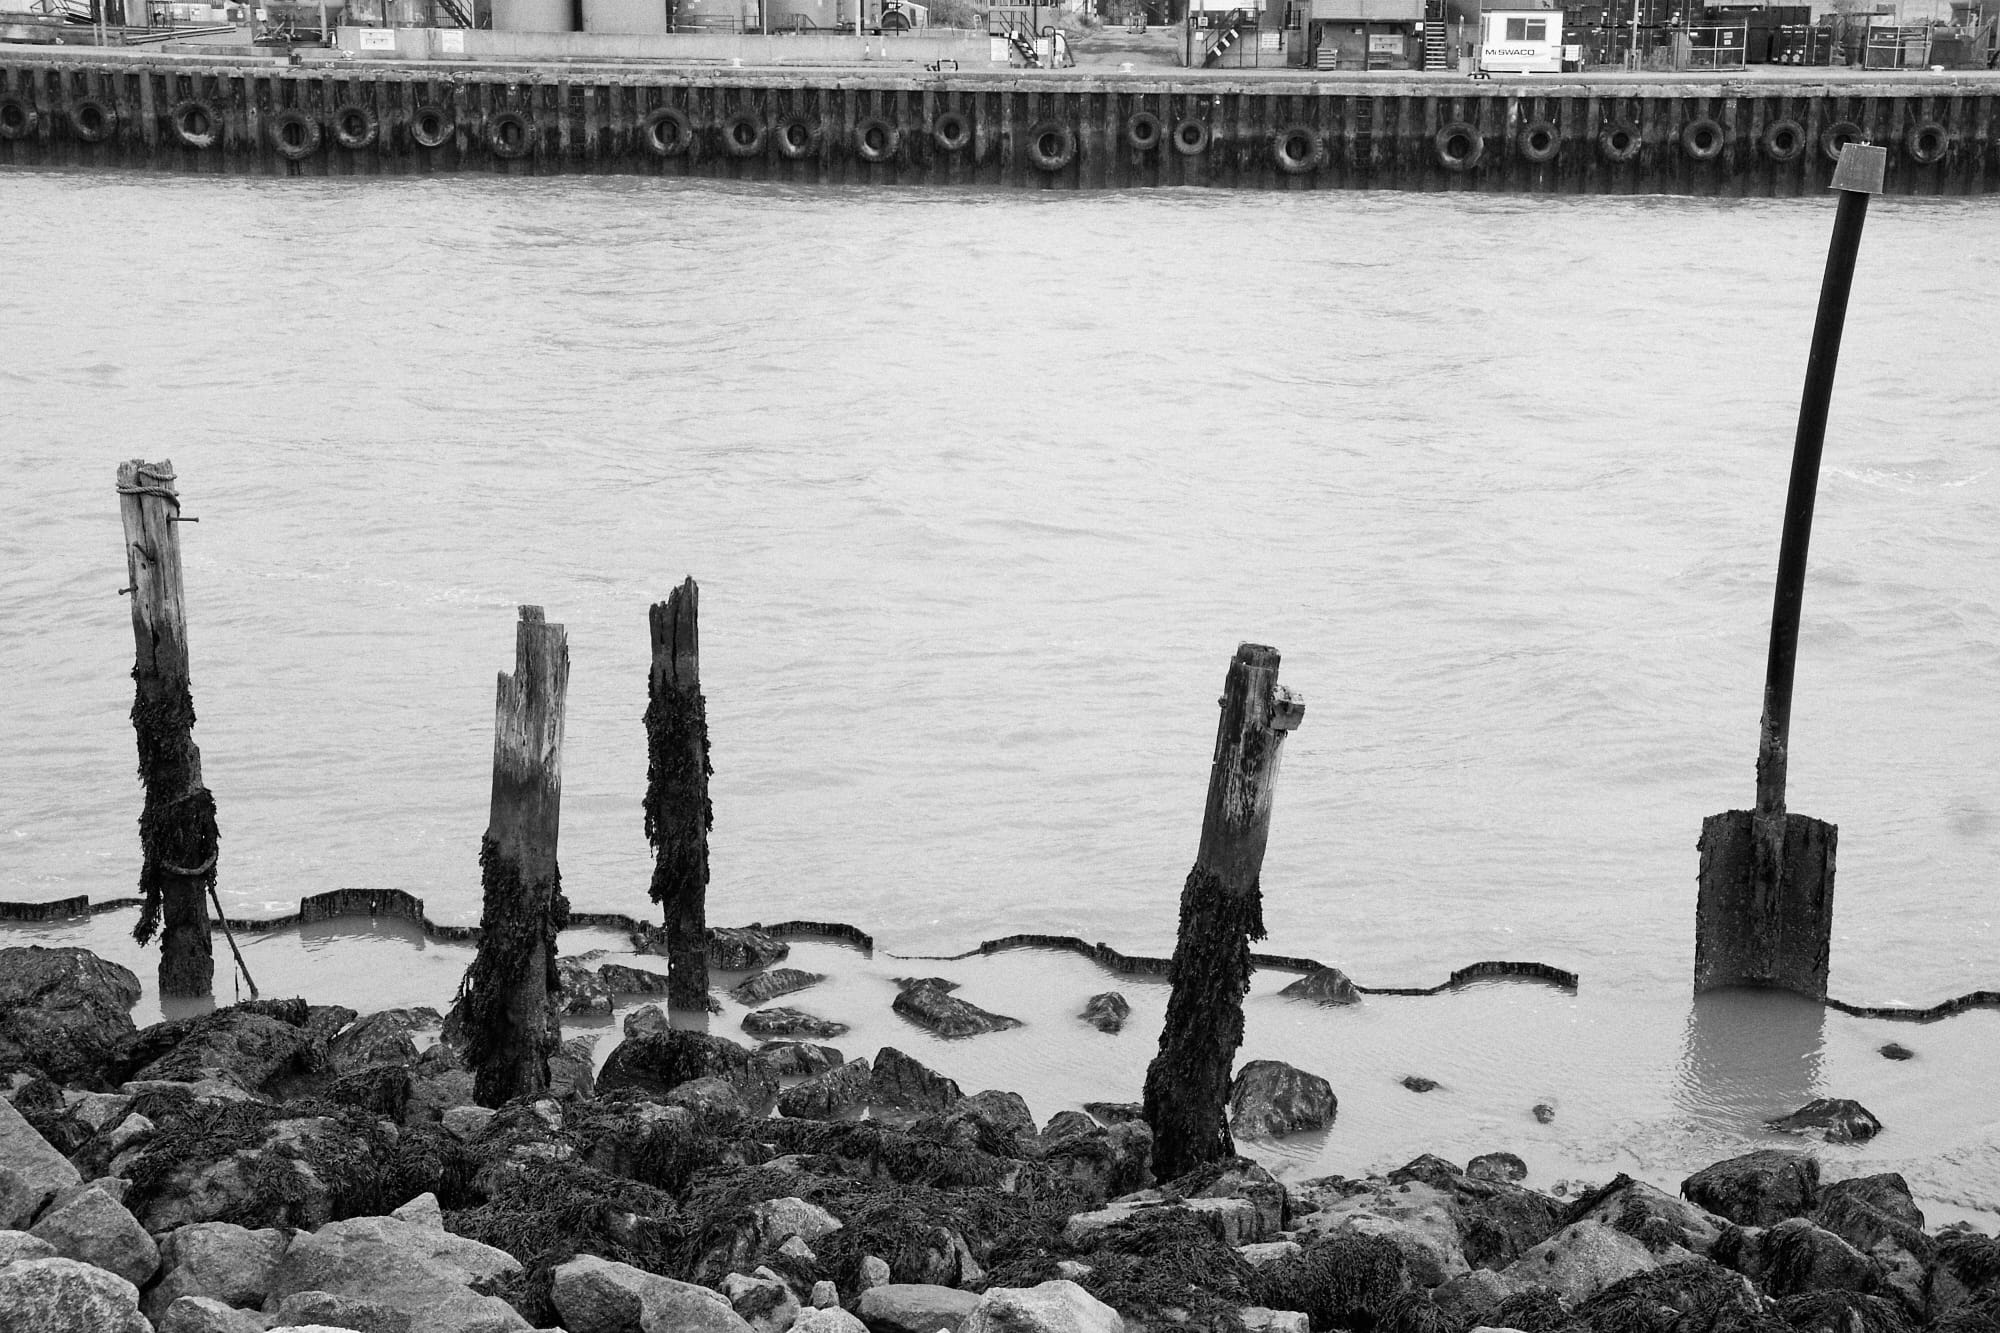 posts at the side of the River Yare